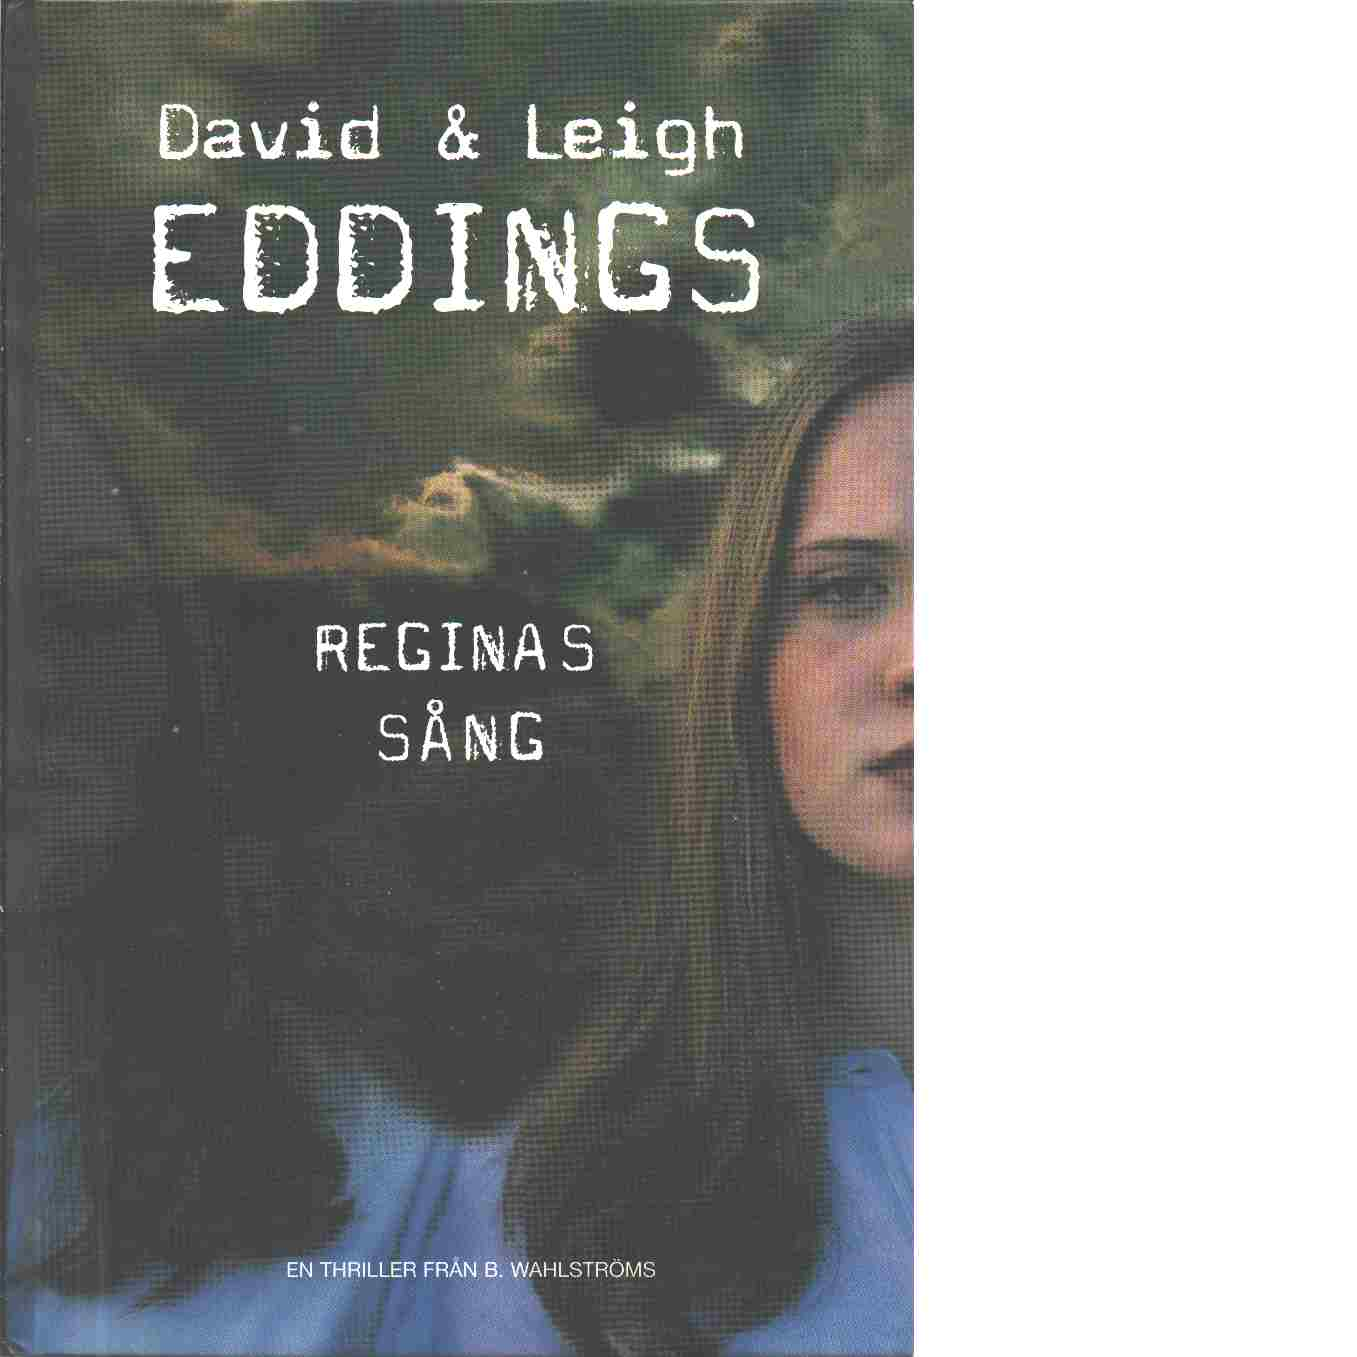 Reginas sång - Eddings, David  och Eddings, Leigh